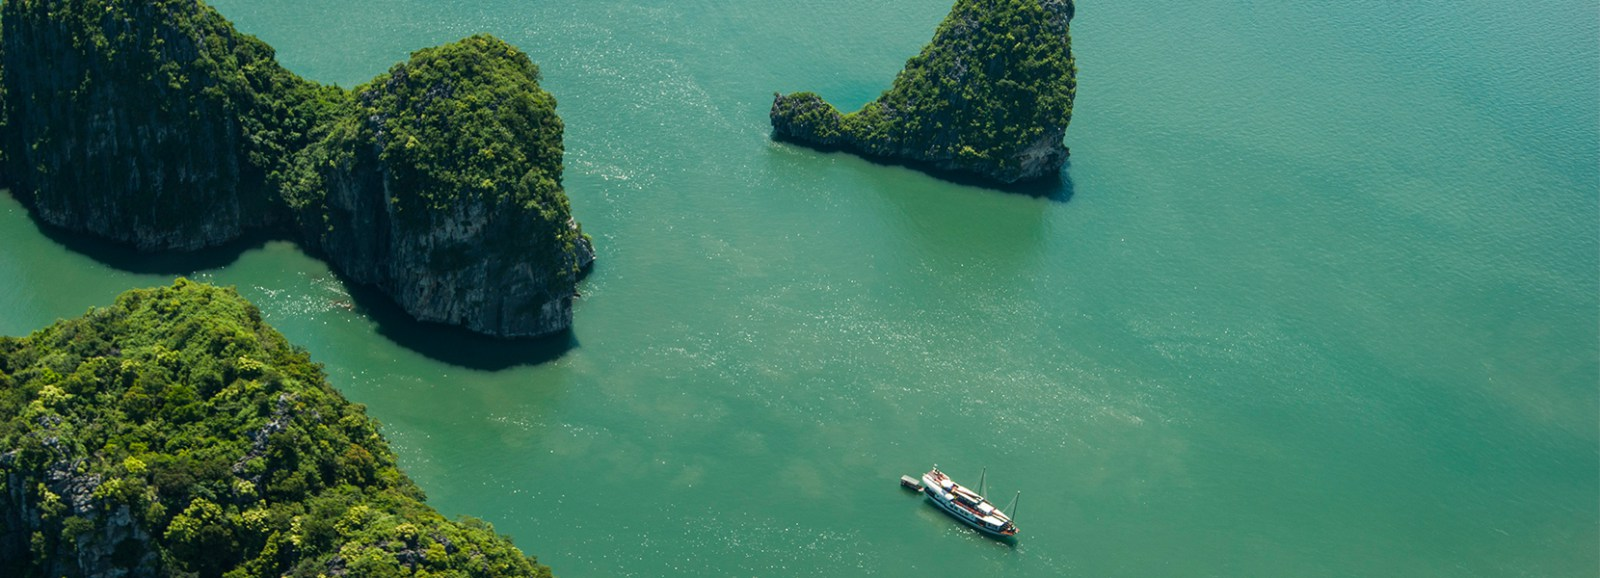 10 Things to pack for your trip to Halong Bay | The 2017 Guide